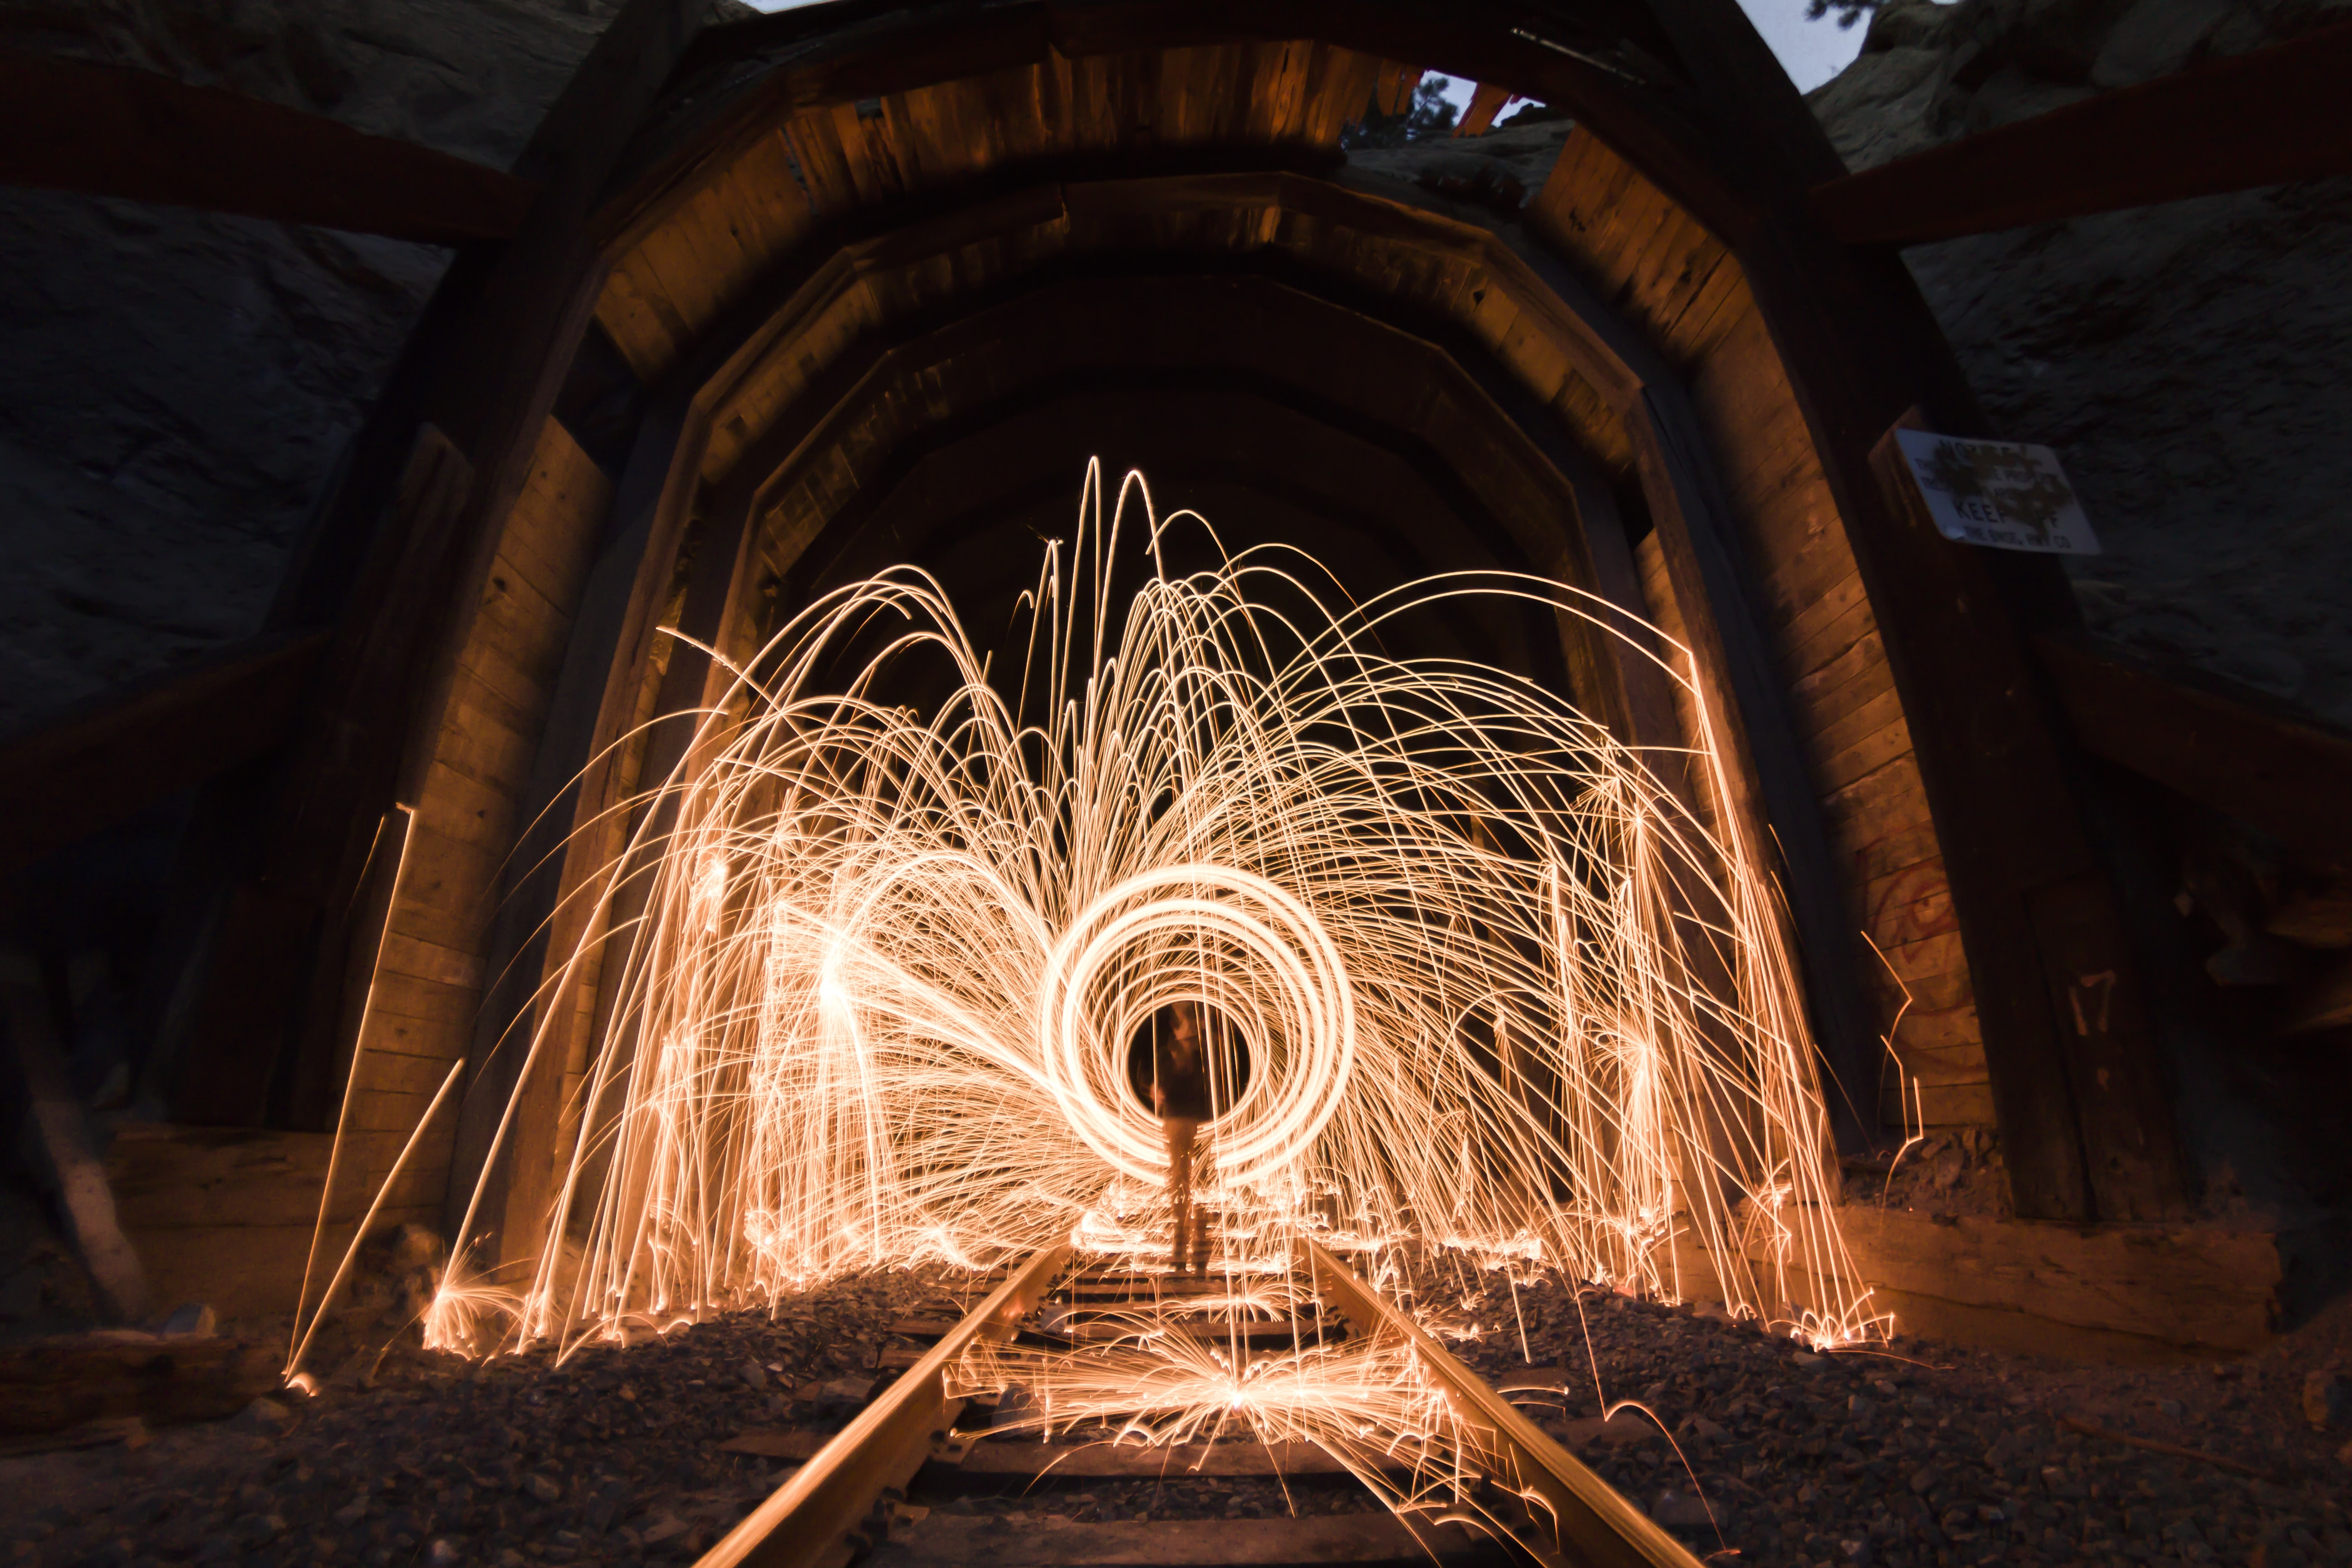 A long exposure shot of steel wool light trails in a tunnel after dark